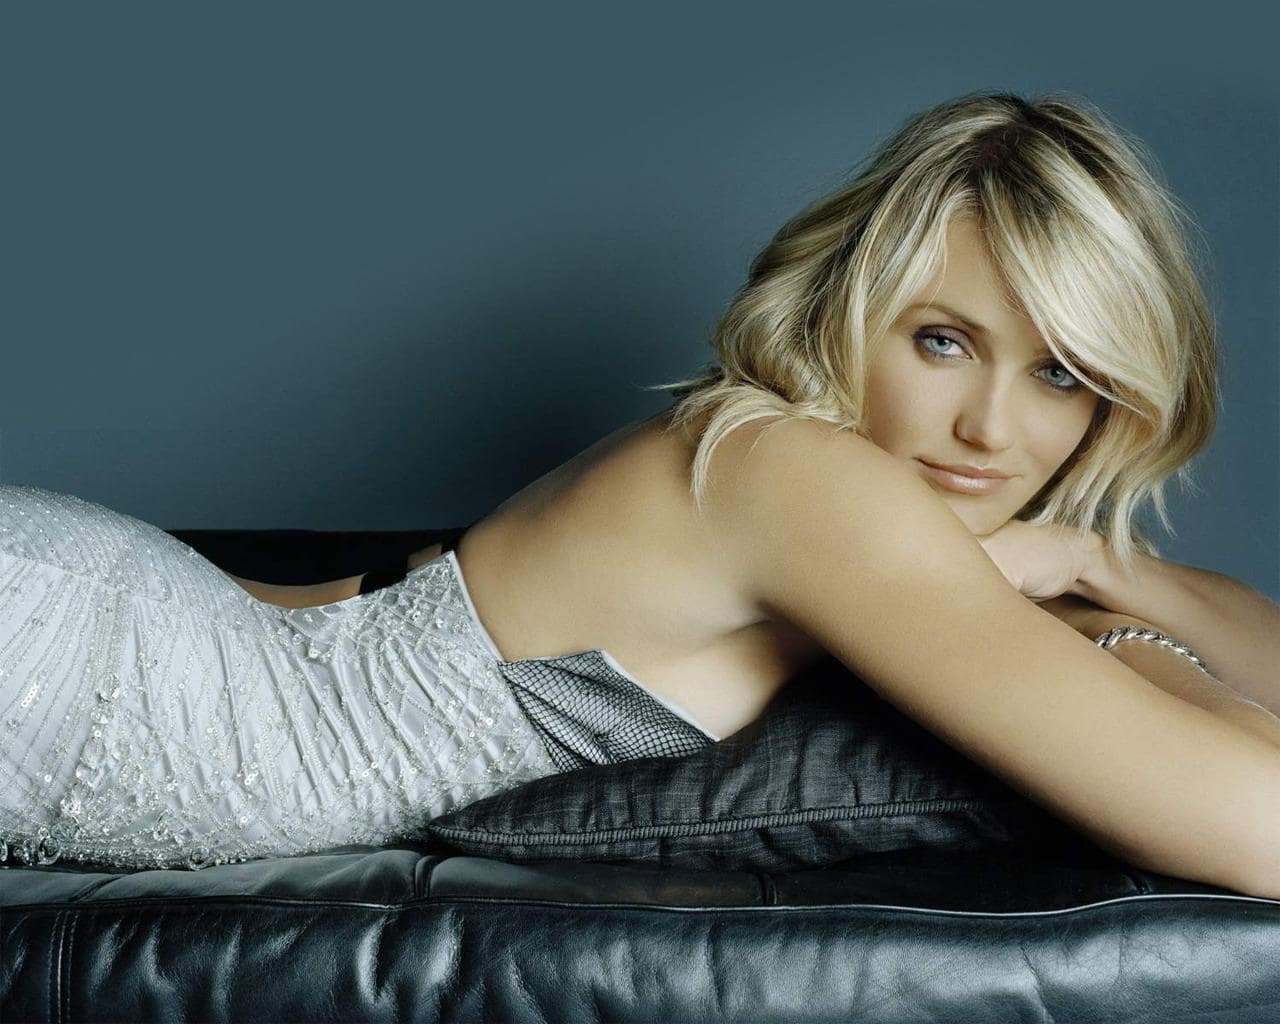 70 Hot Pictures Of Cameron Diaz Which Will Make You Her -4642